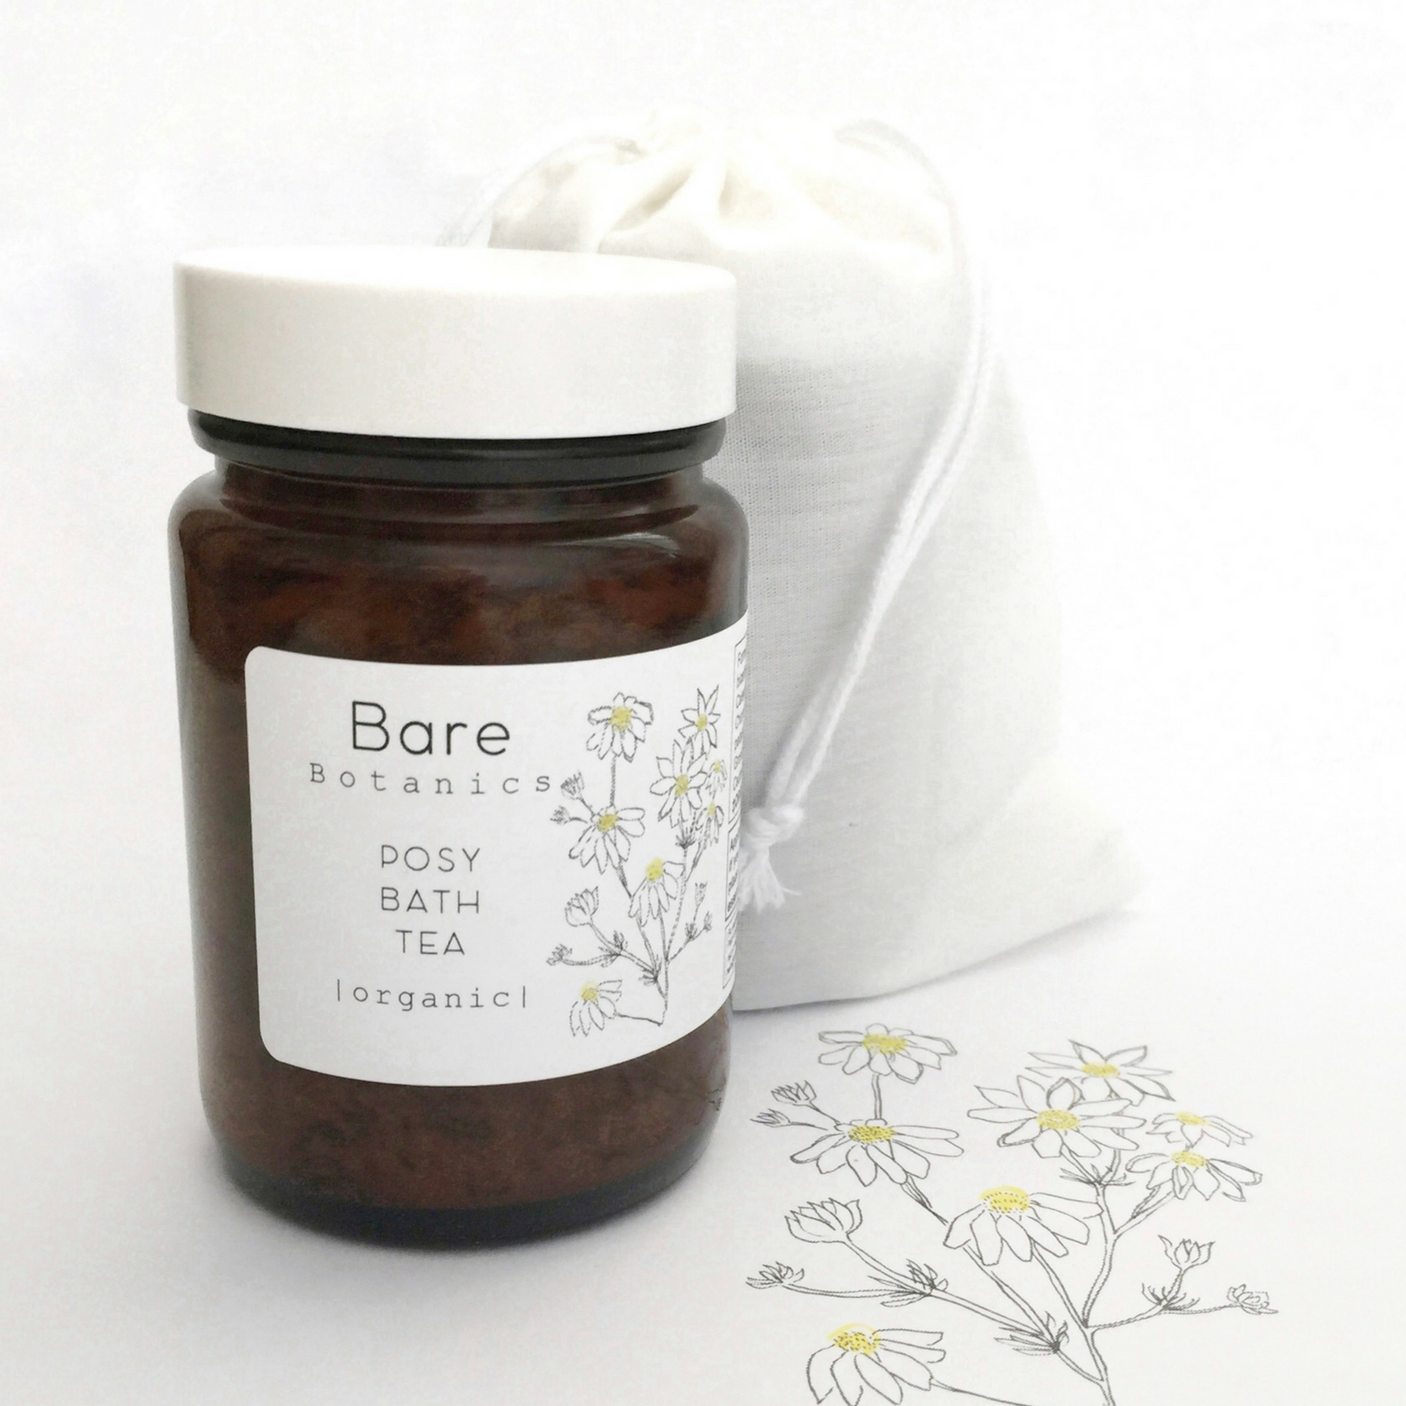 ILLUSTRATION / Bare Botanics - Since 2016 I have been illustrating botanical ingredients for the gorgeous local organic skincare range Bare Botanics, seen across their packaging and online shop.